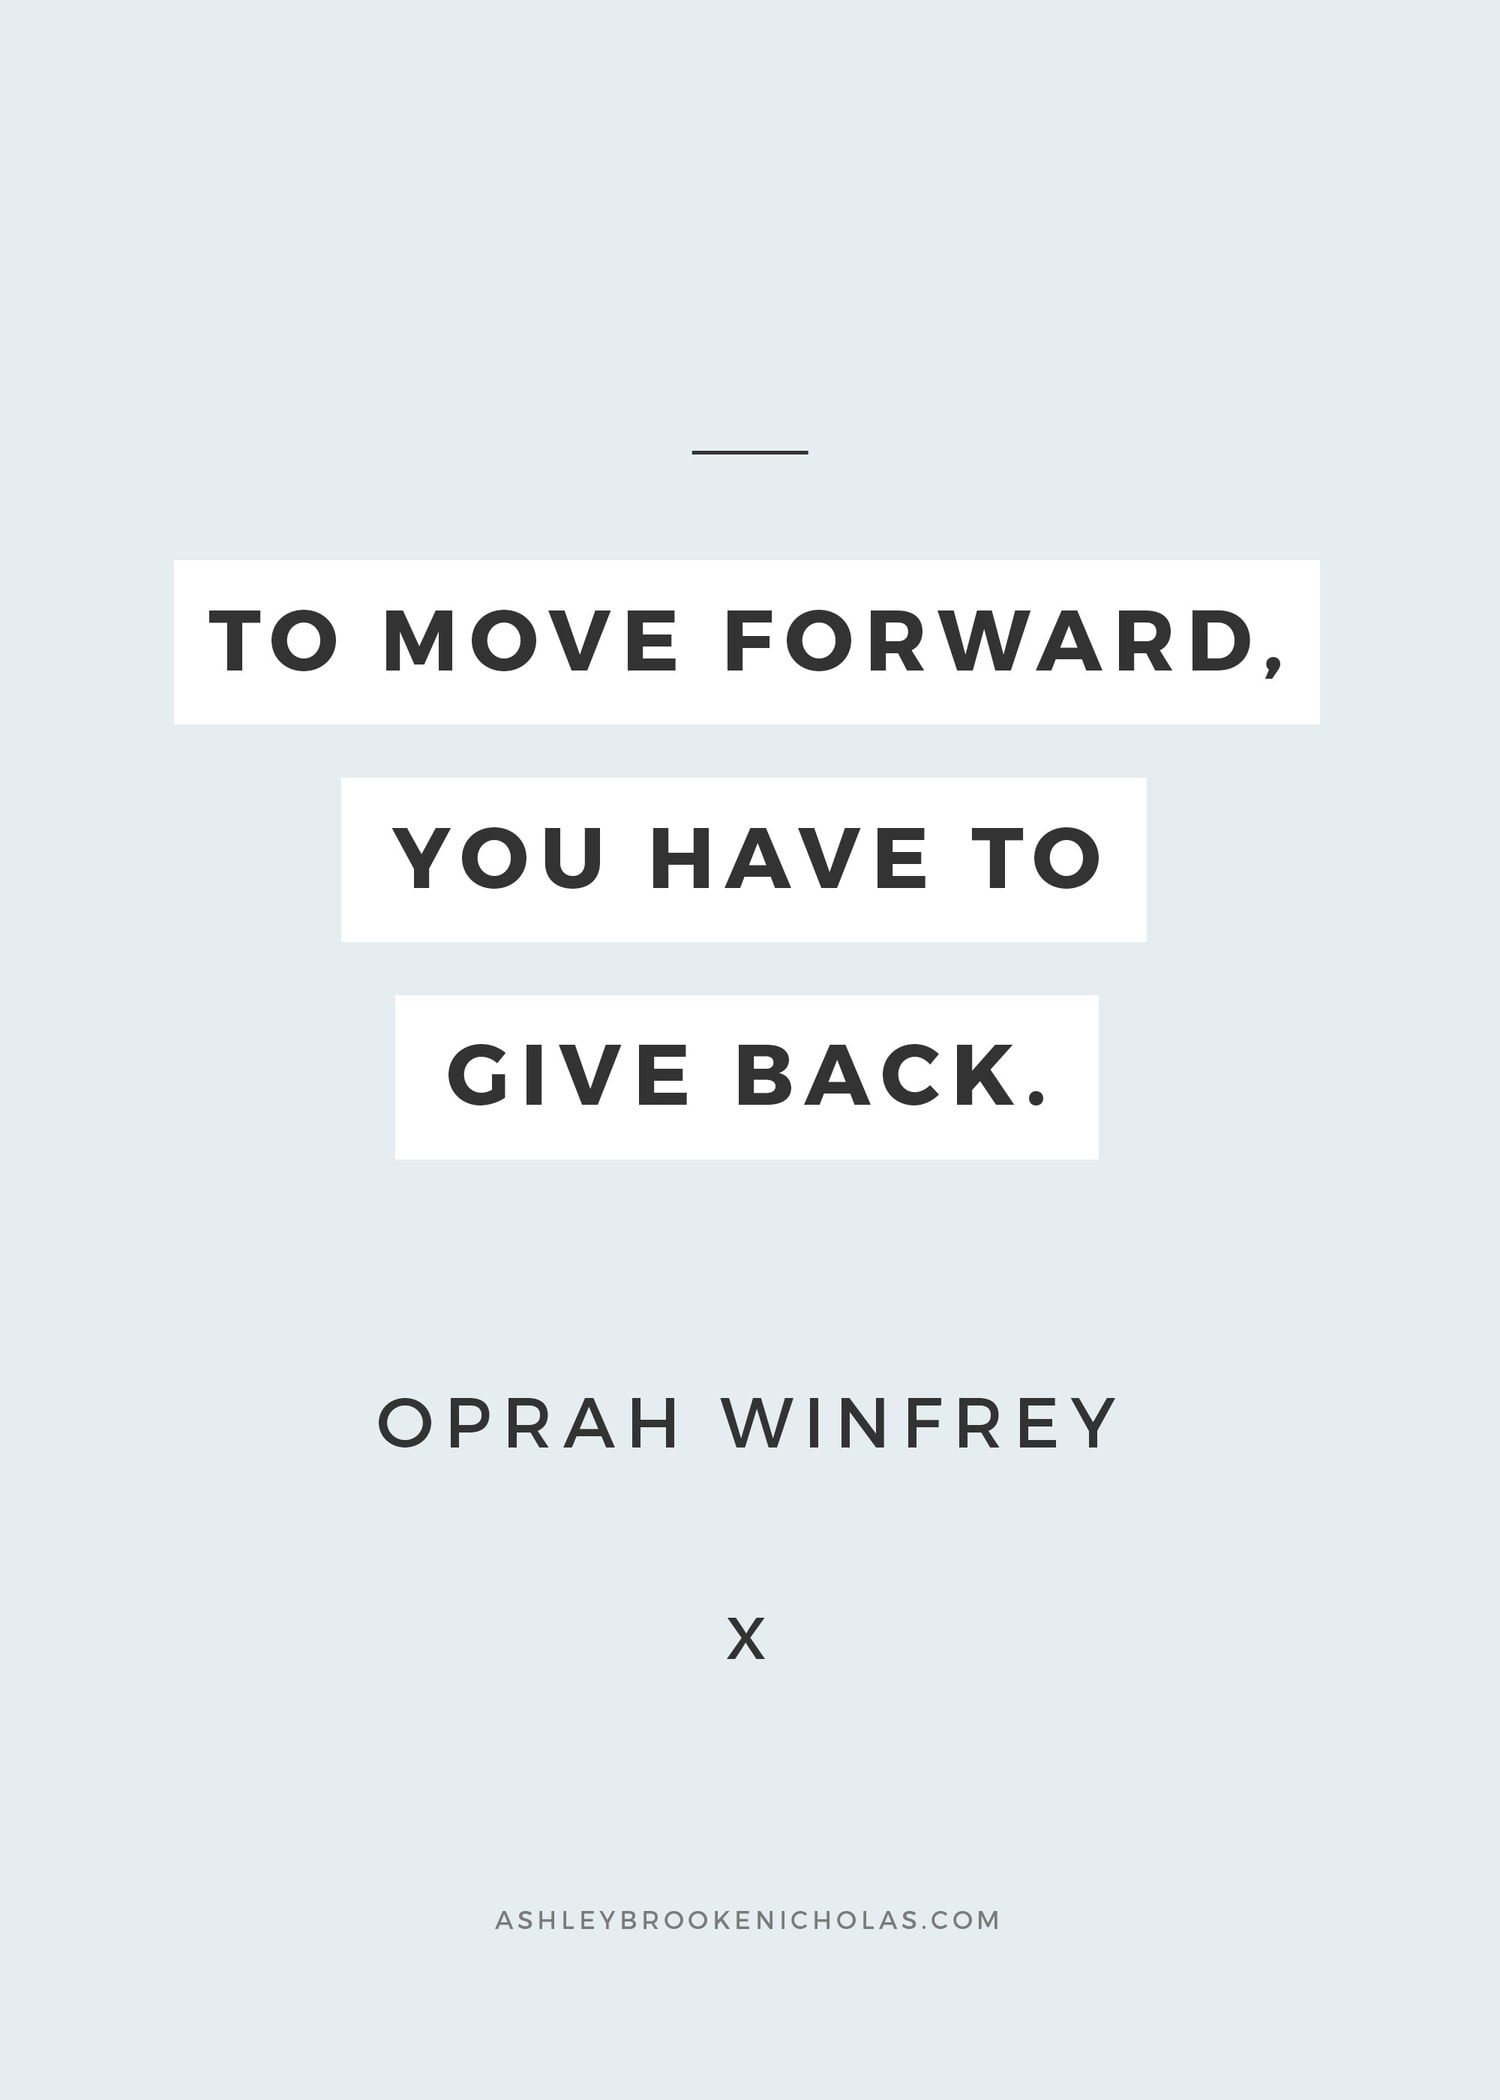 Why Oprah Winfrey continues to inspire people across the globe